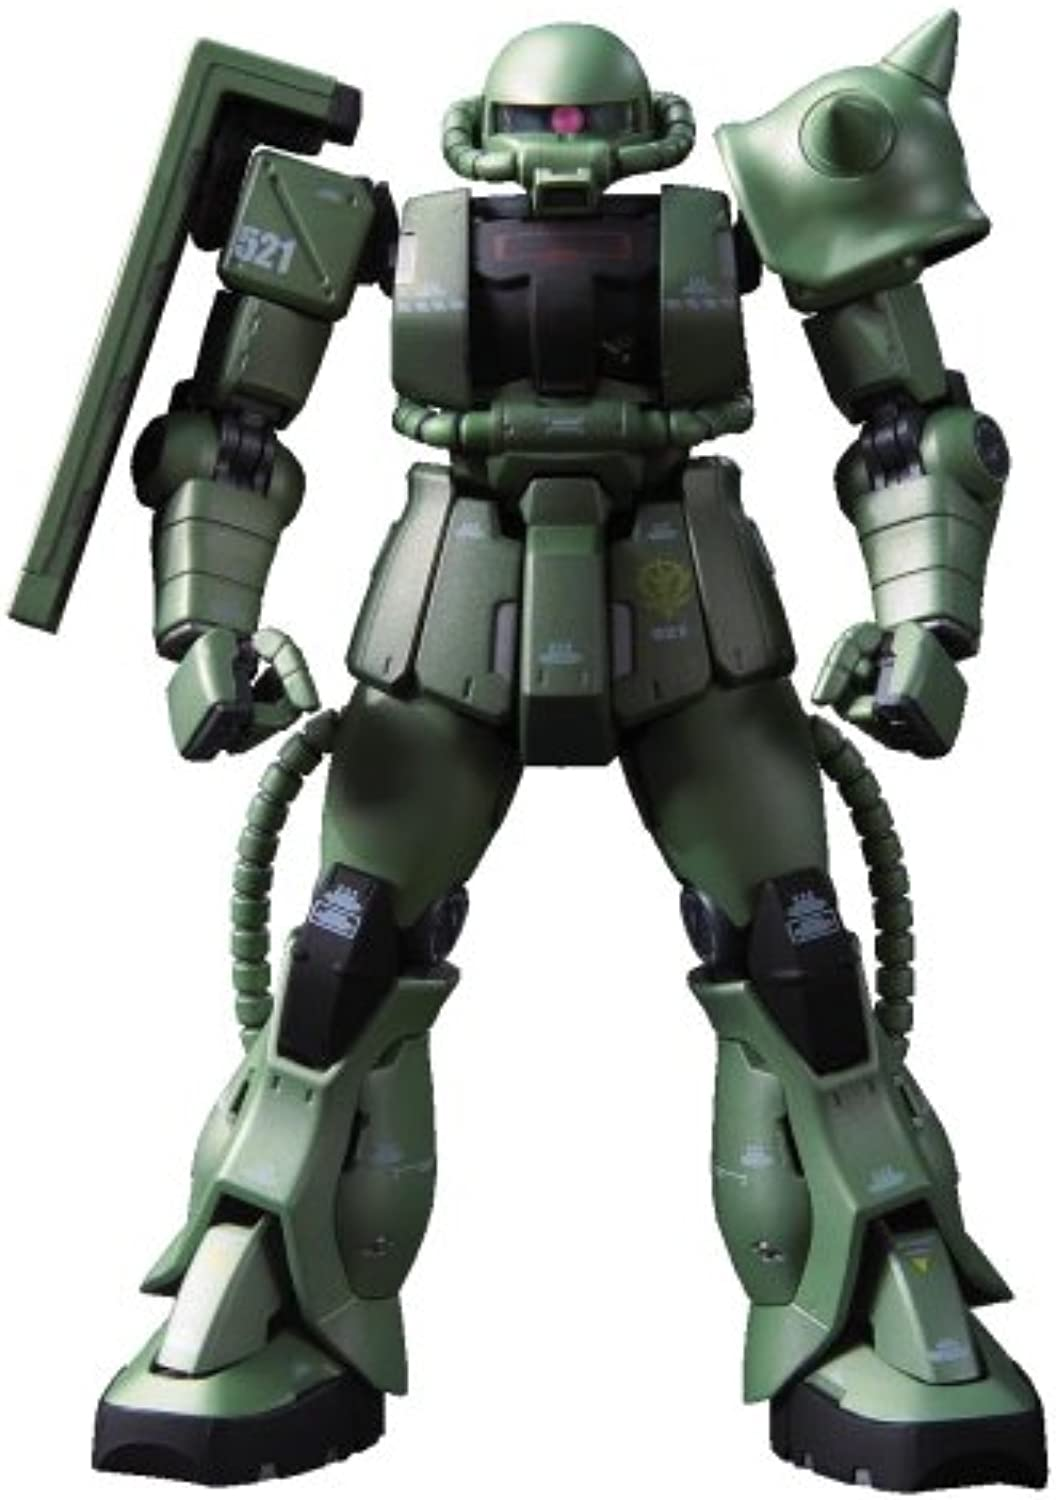 Gundam Super HCM SHCM Pro MS-06F Zaku figure (japan import)